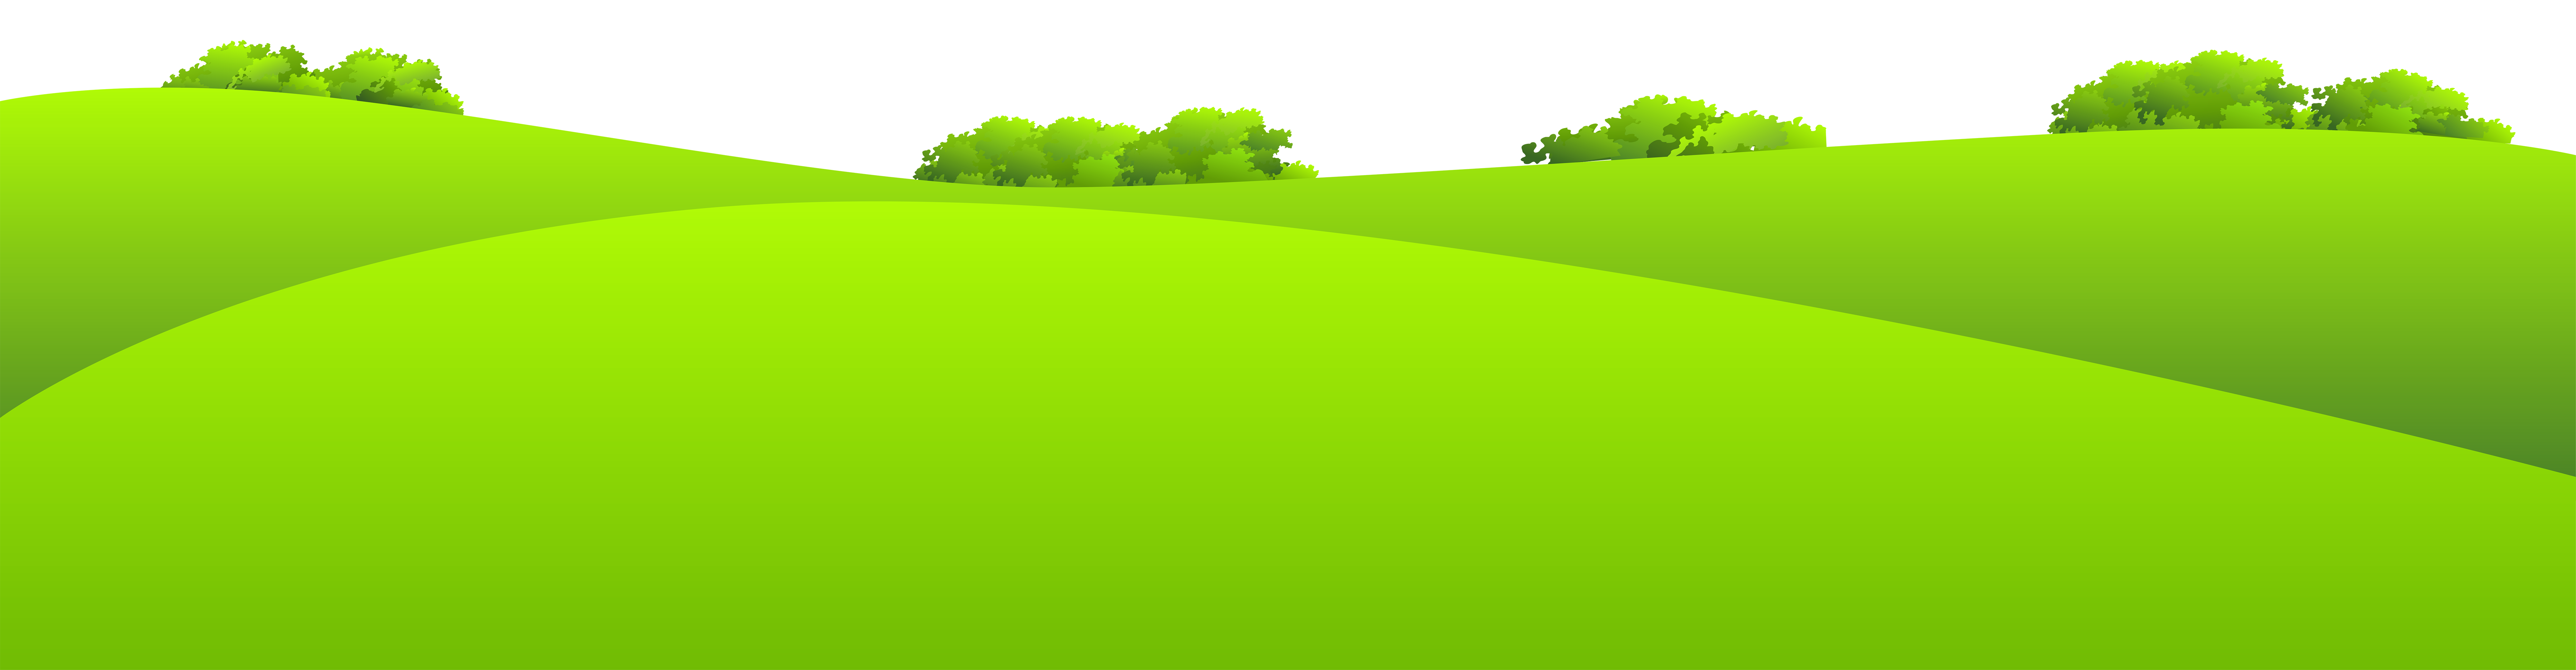 vector free download hill vector rolling hills #113576538